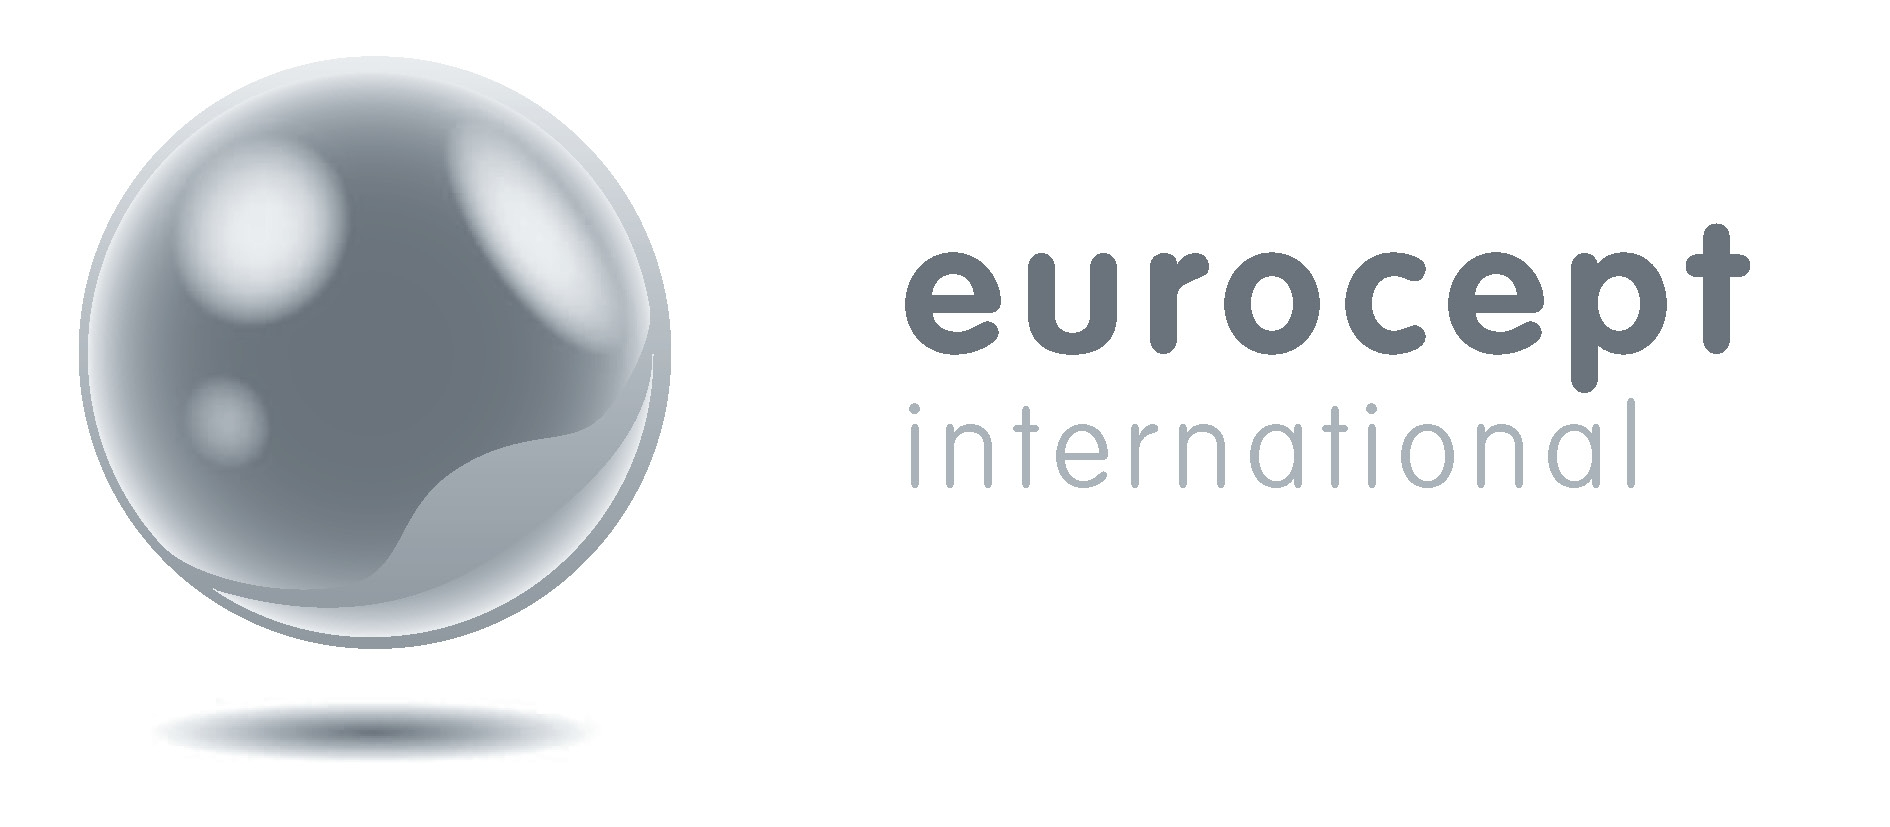 eurocept international